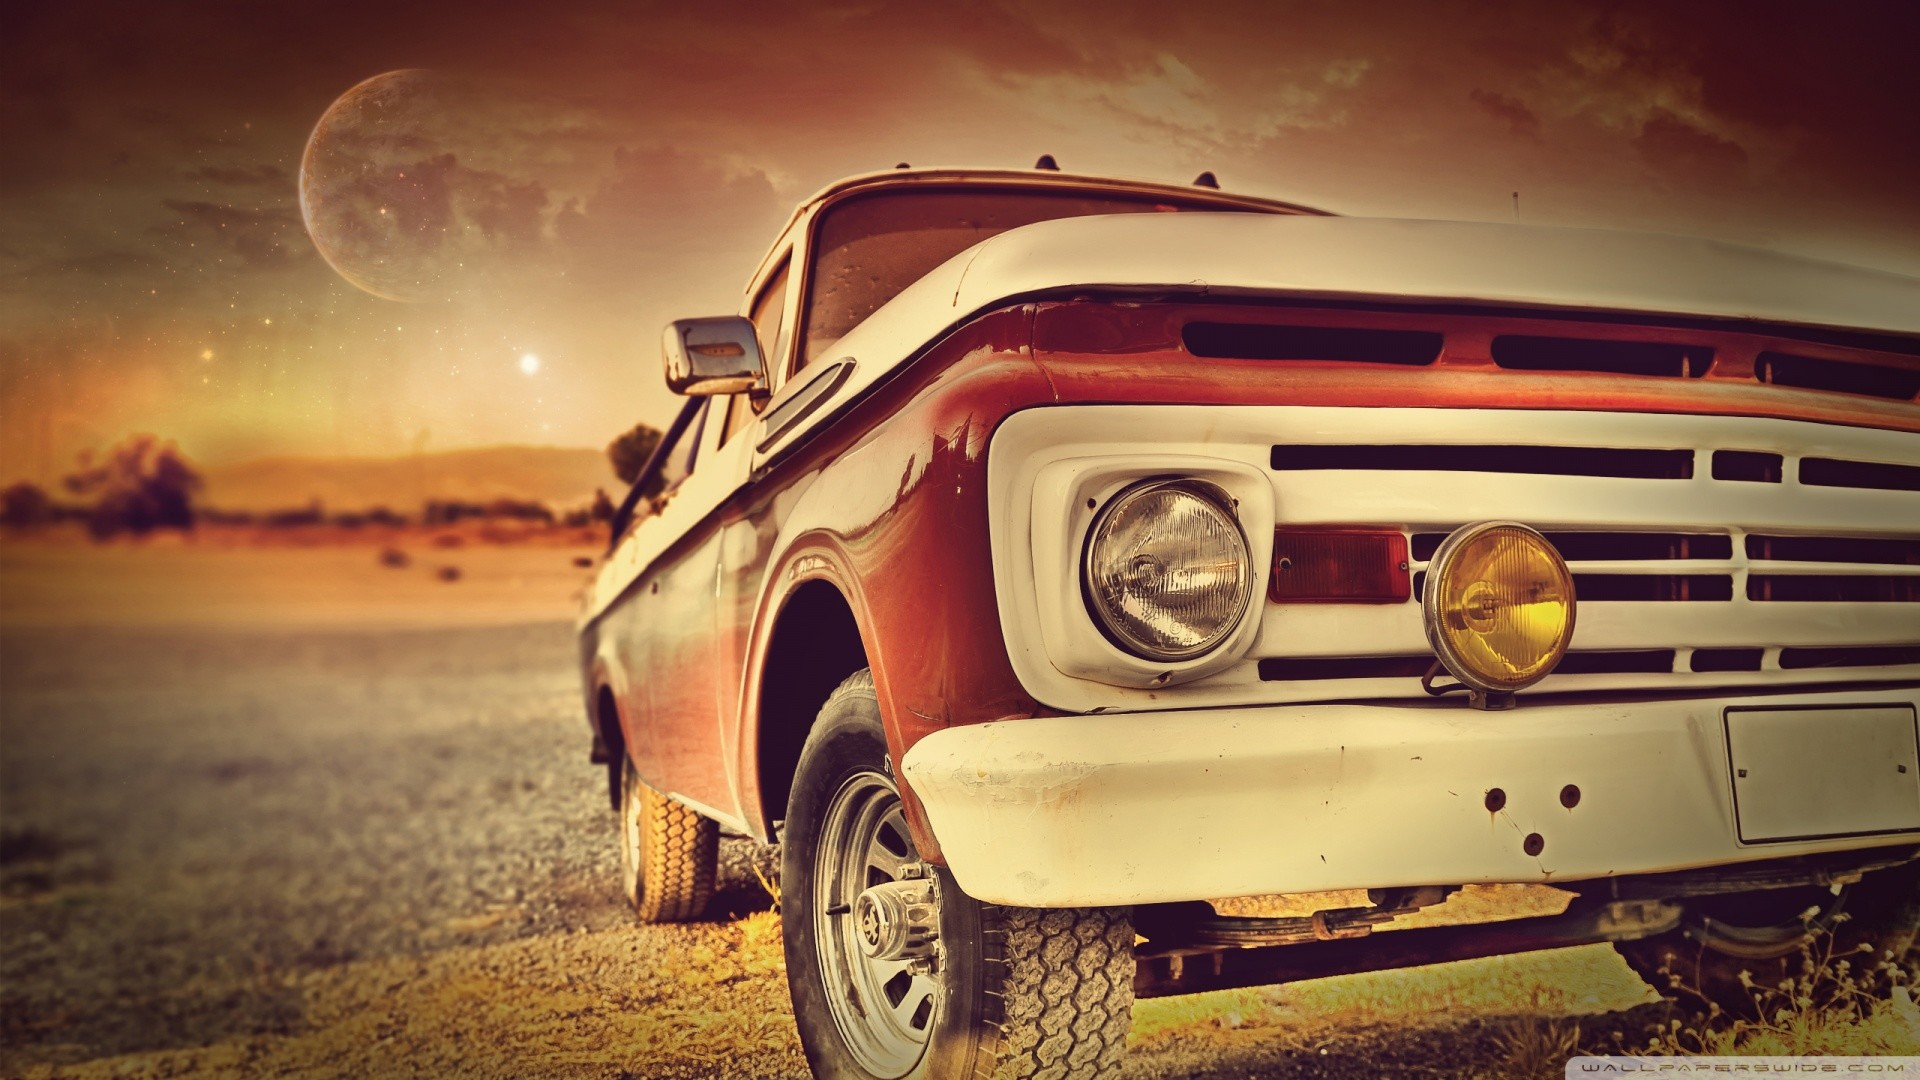 classic car backgrounds (65+ images)